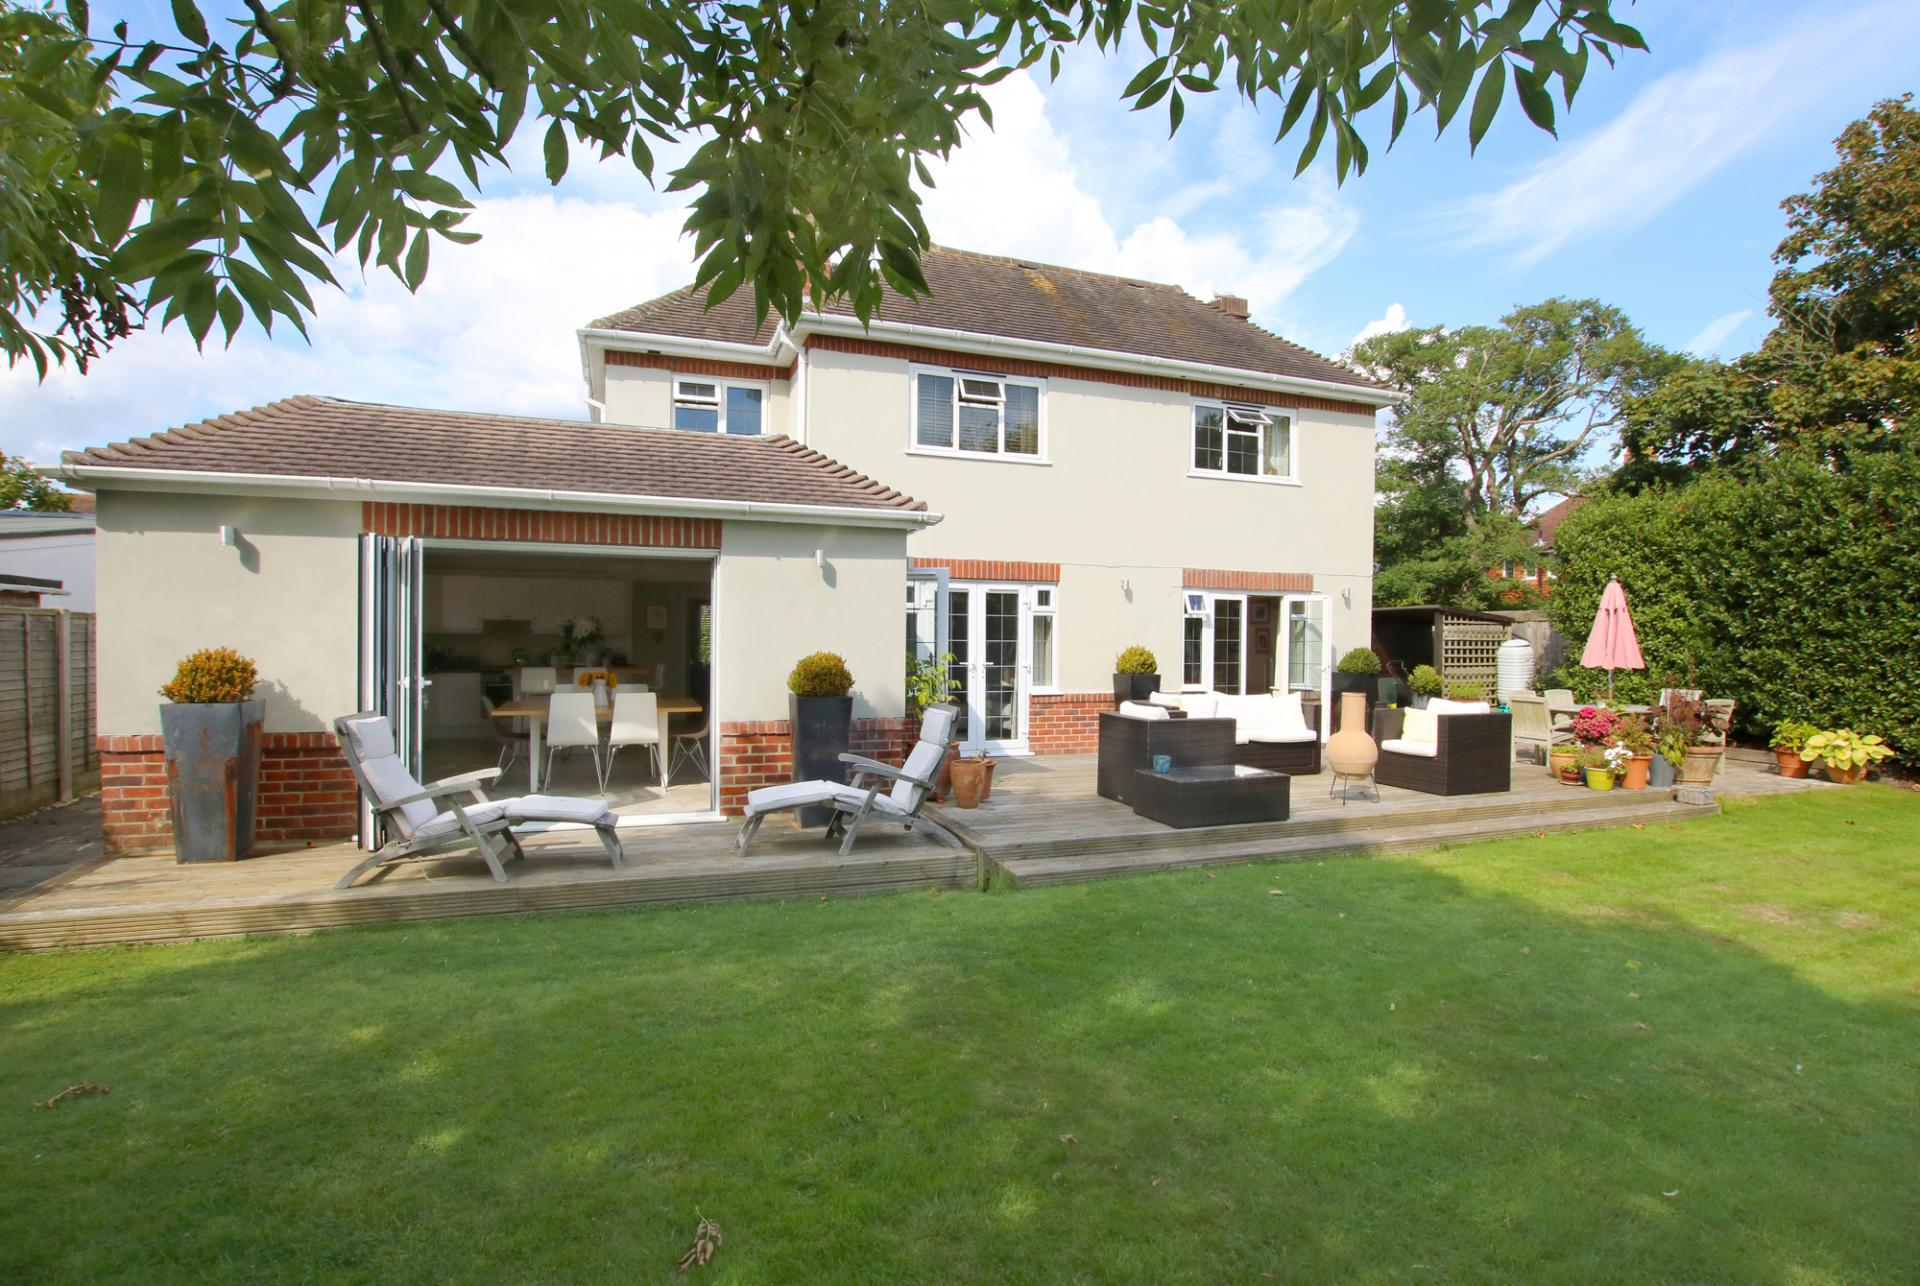 Detached Properties For Sale At Milford On Sea